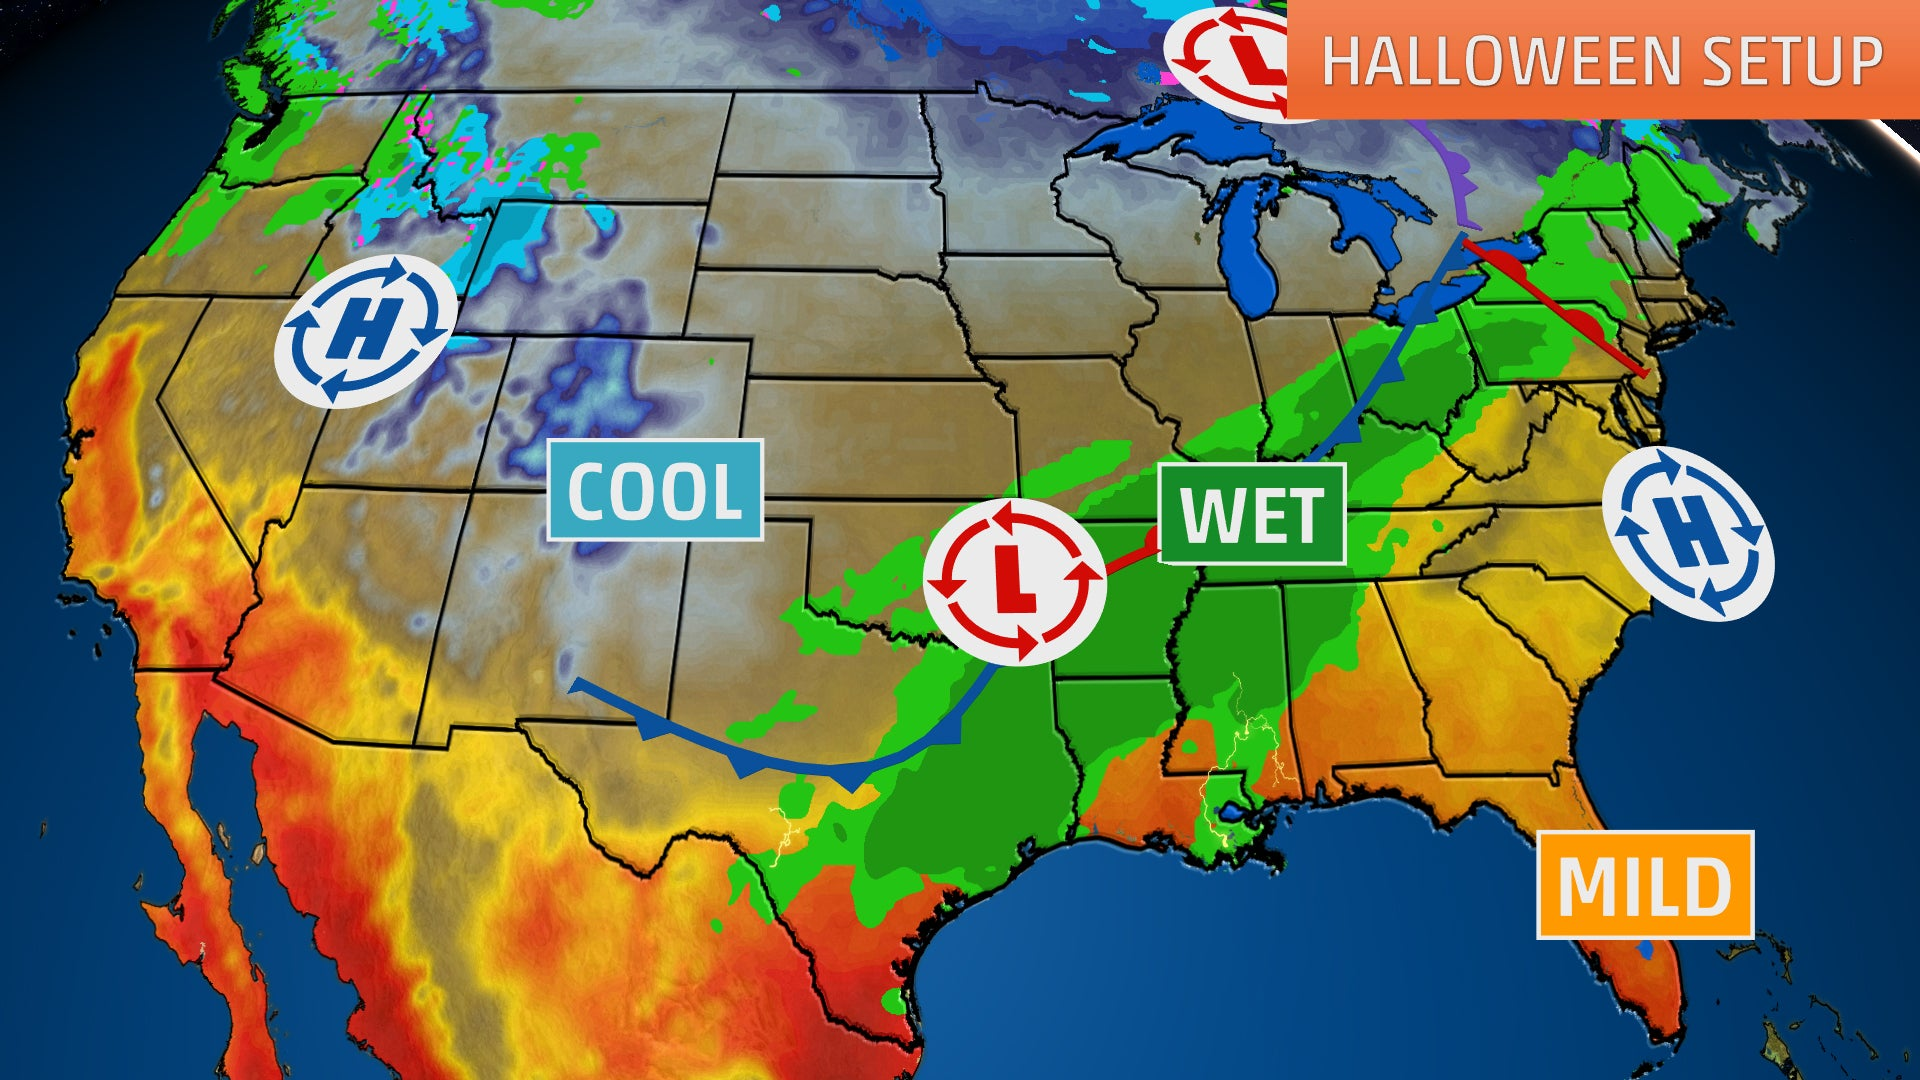 Weather Map Knoxville.Halloween Weather Forecast Wet Conditions From Texas To Ohio Valley